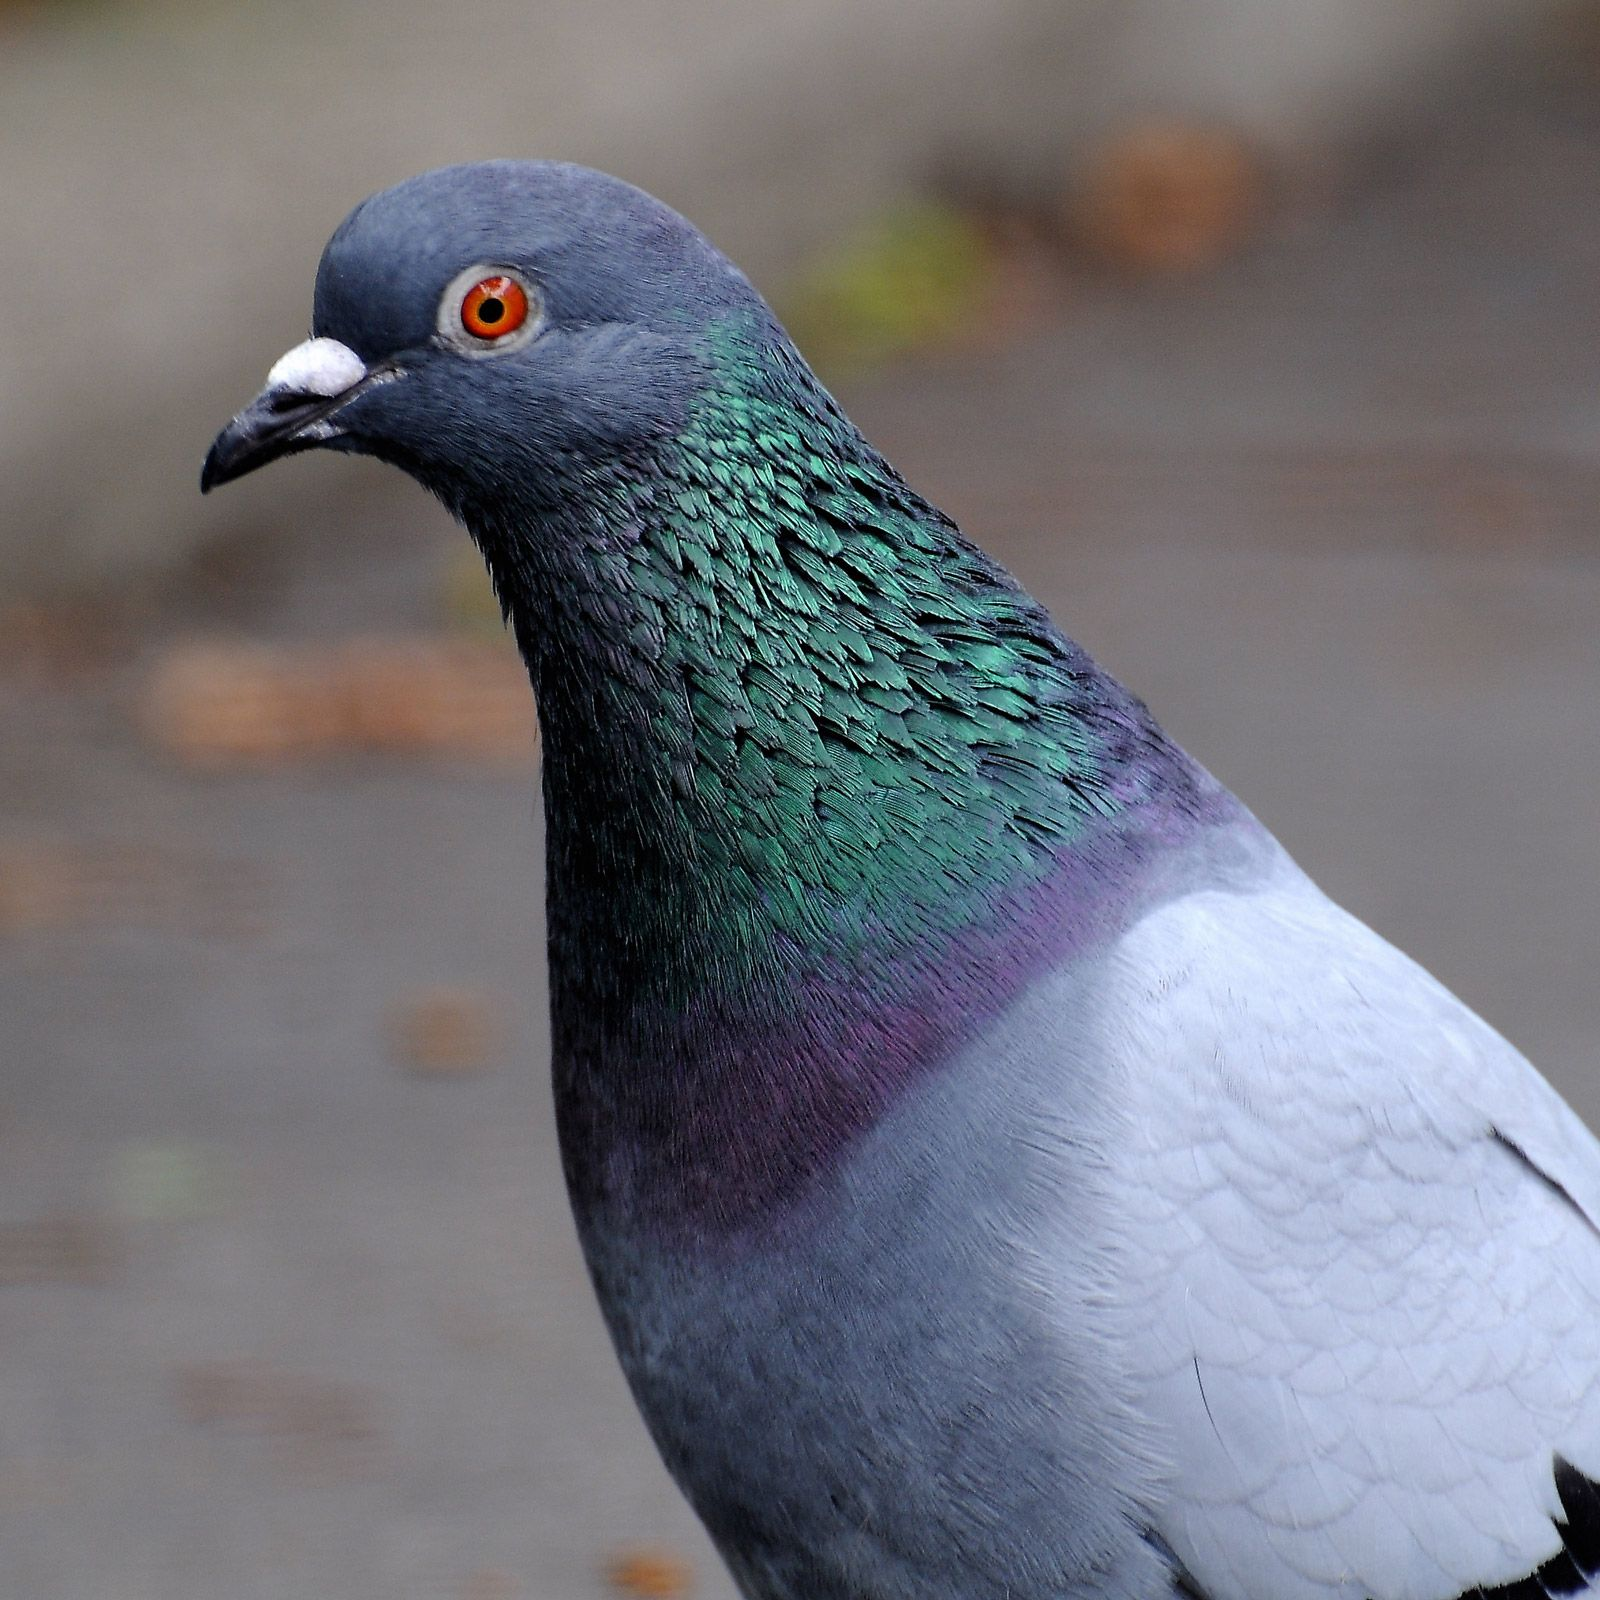 beautiful pigeon picture jean michel volat